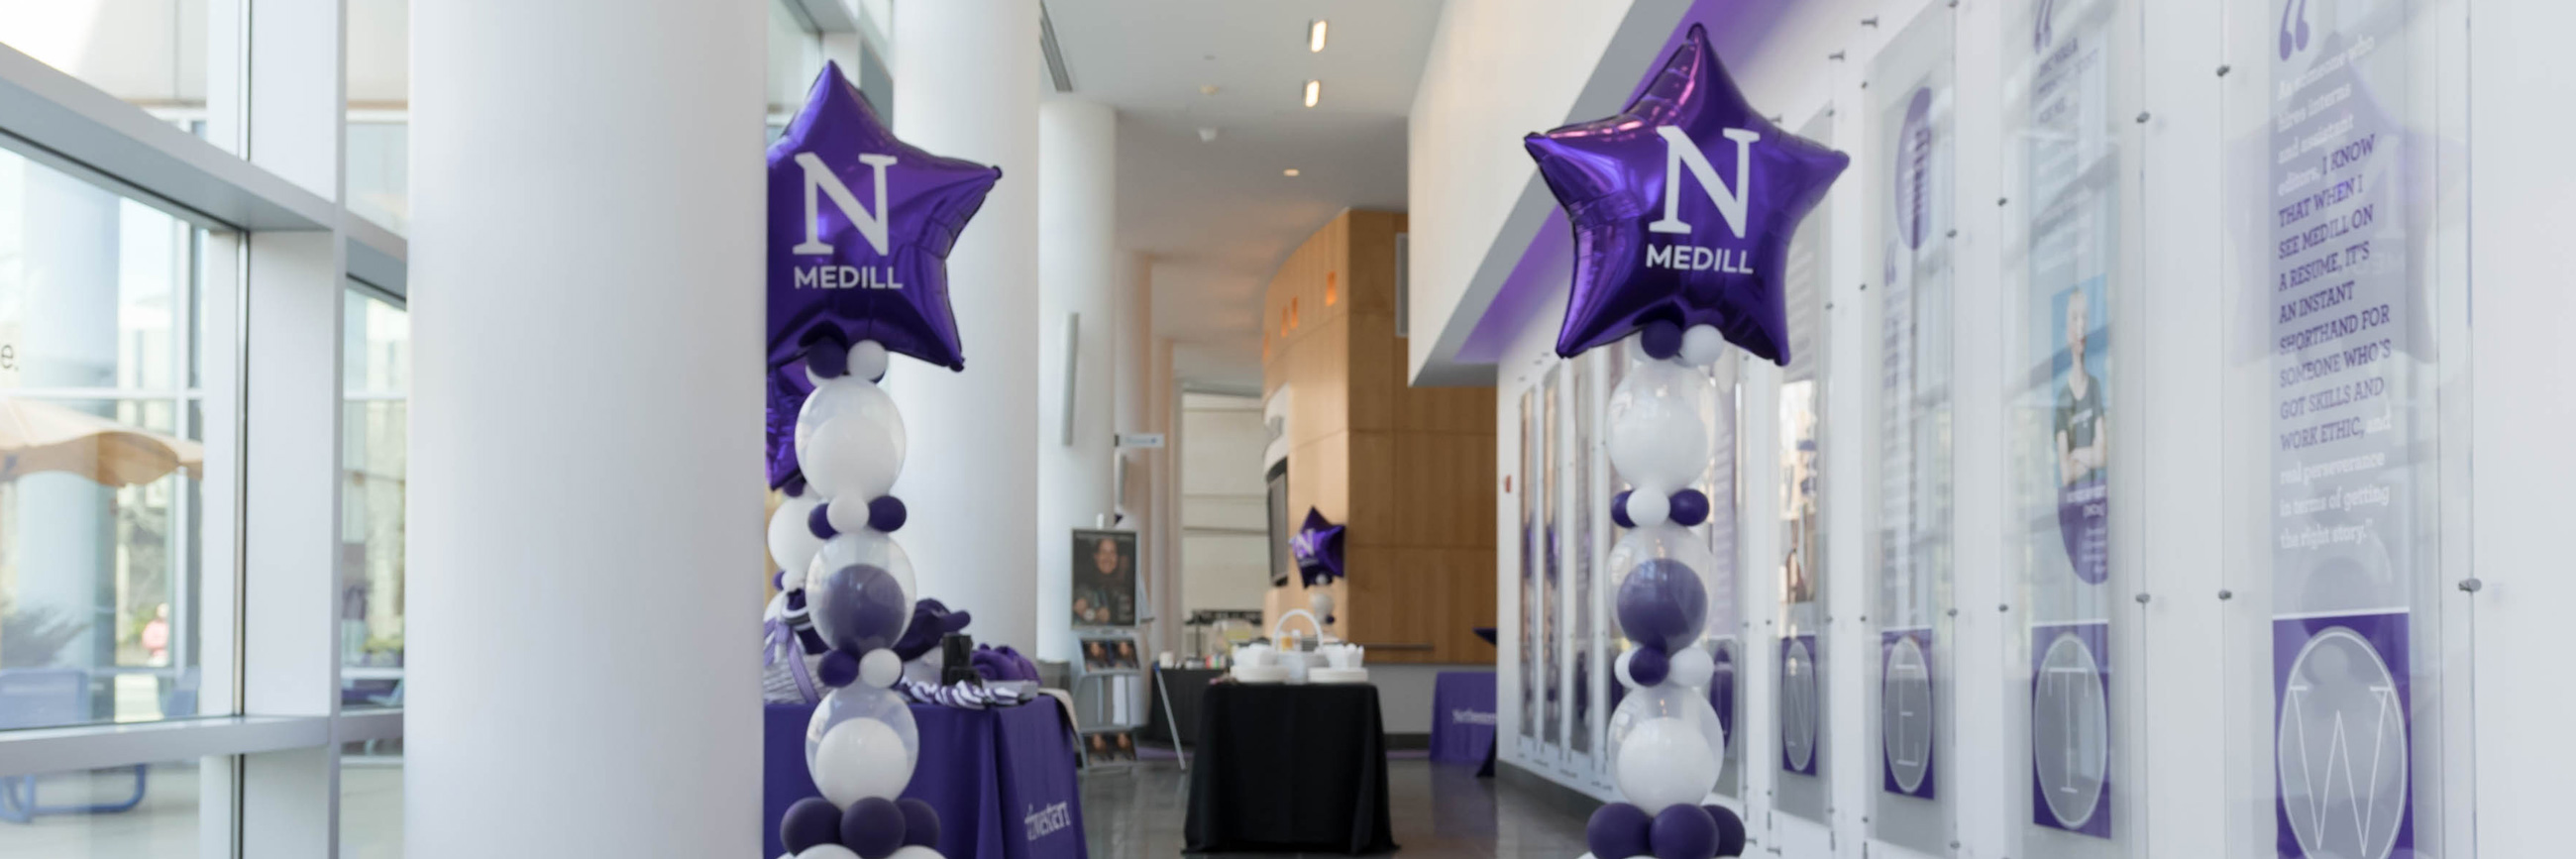 Entrance to the McCormick Foundation Center building; purple and white balloons are on the sides and a purple carpet is on the ground